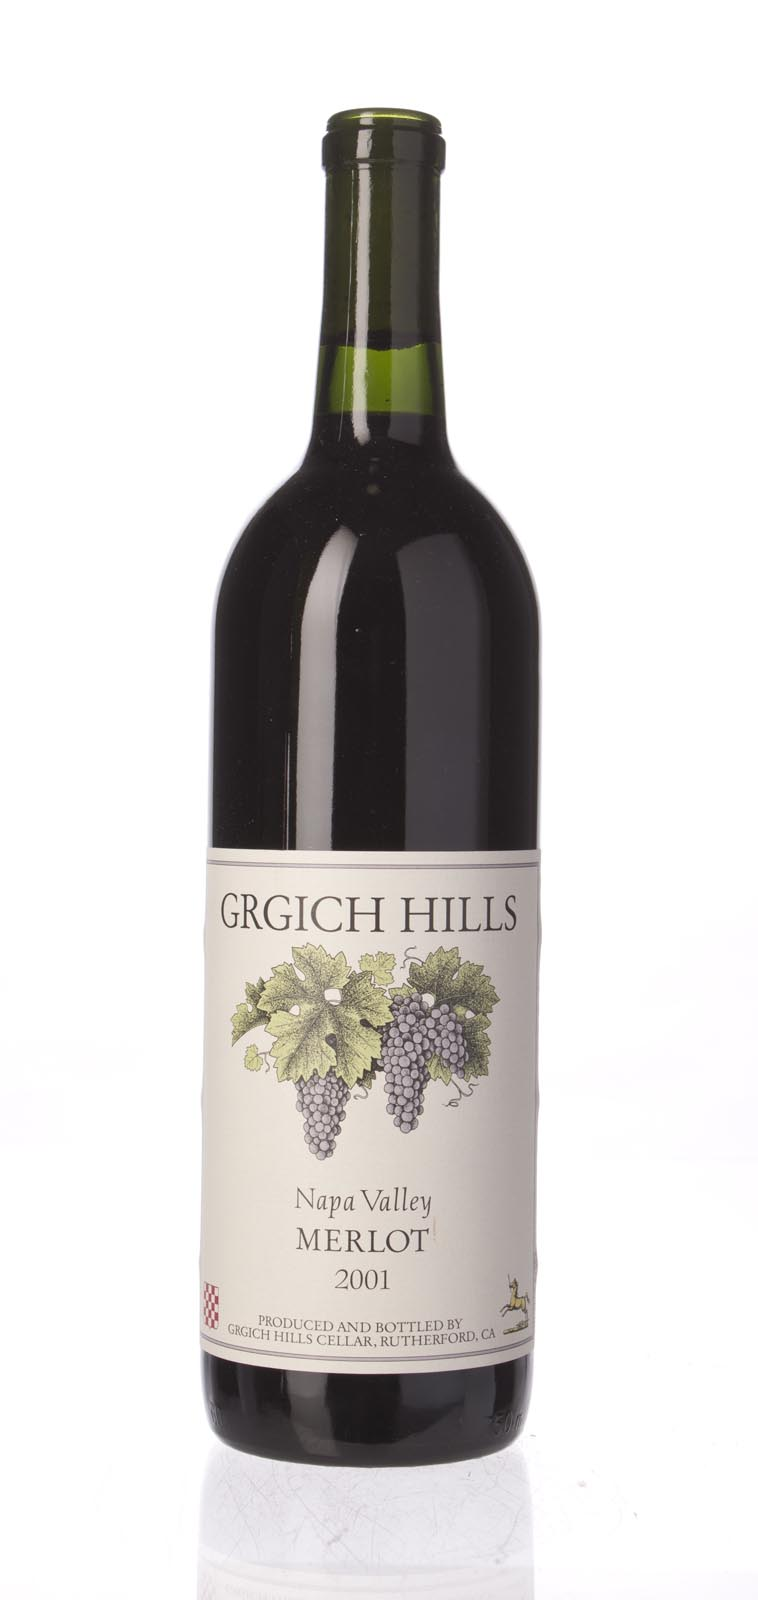 Grgich Hills Merlot Napa Valley 2001, 750ml () from The BPW - Merchants of rare and fine wines.